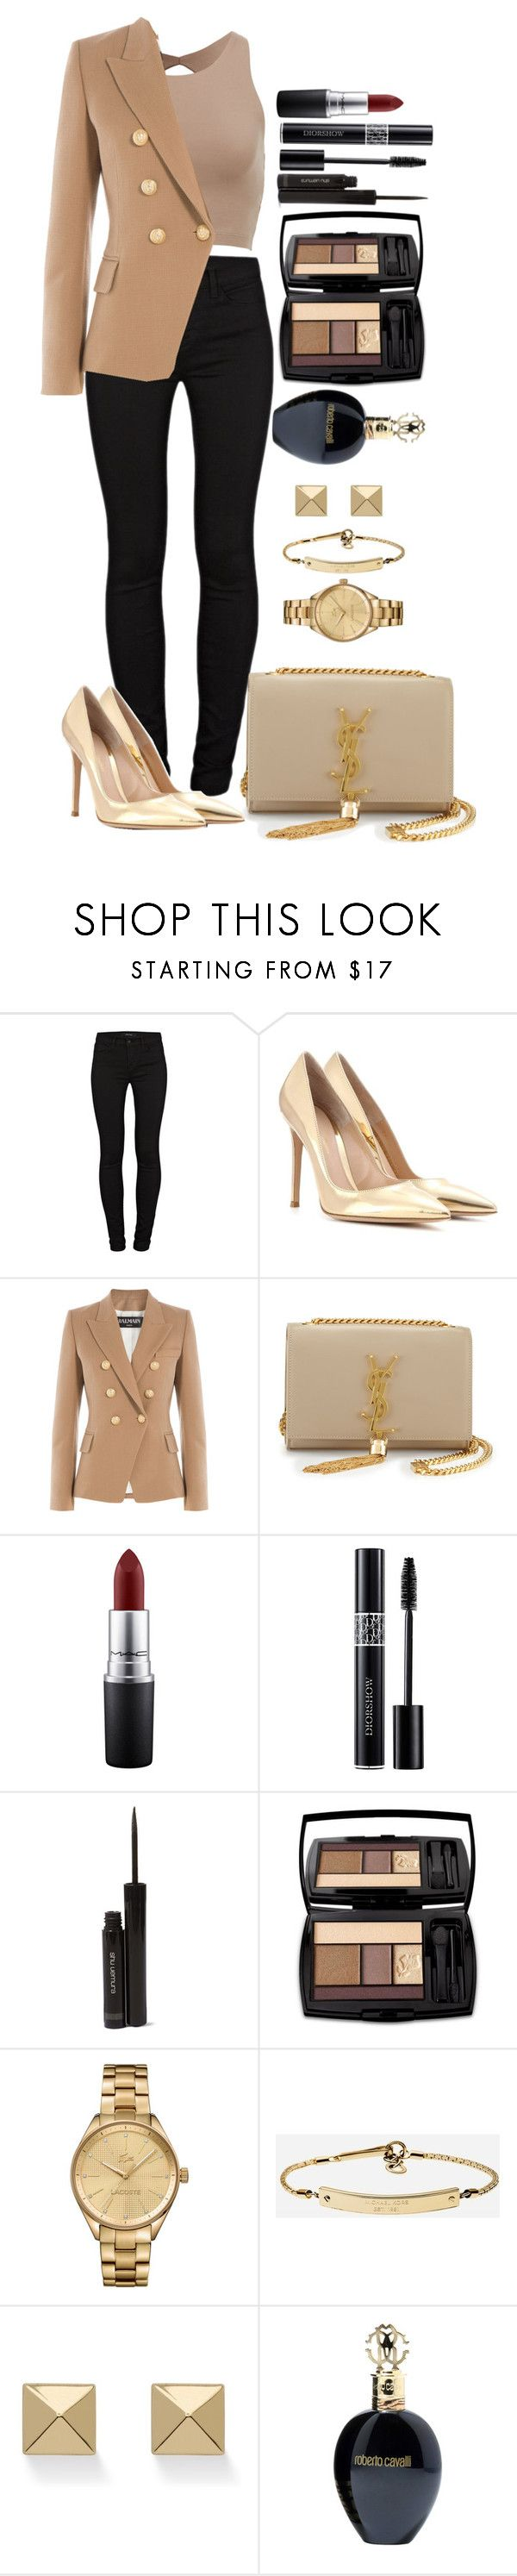 """Untitled #1328"" by fabianarveloc on Polyvore featuring J Brand, Gianvito Rossi, Balmain, Yves Saint Laurent, MAC Cosmetics, Christian Dior, shu uemura, Lancôme, Lacoste and MICHAEL Michael Kors"